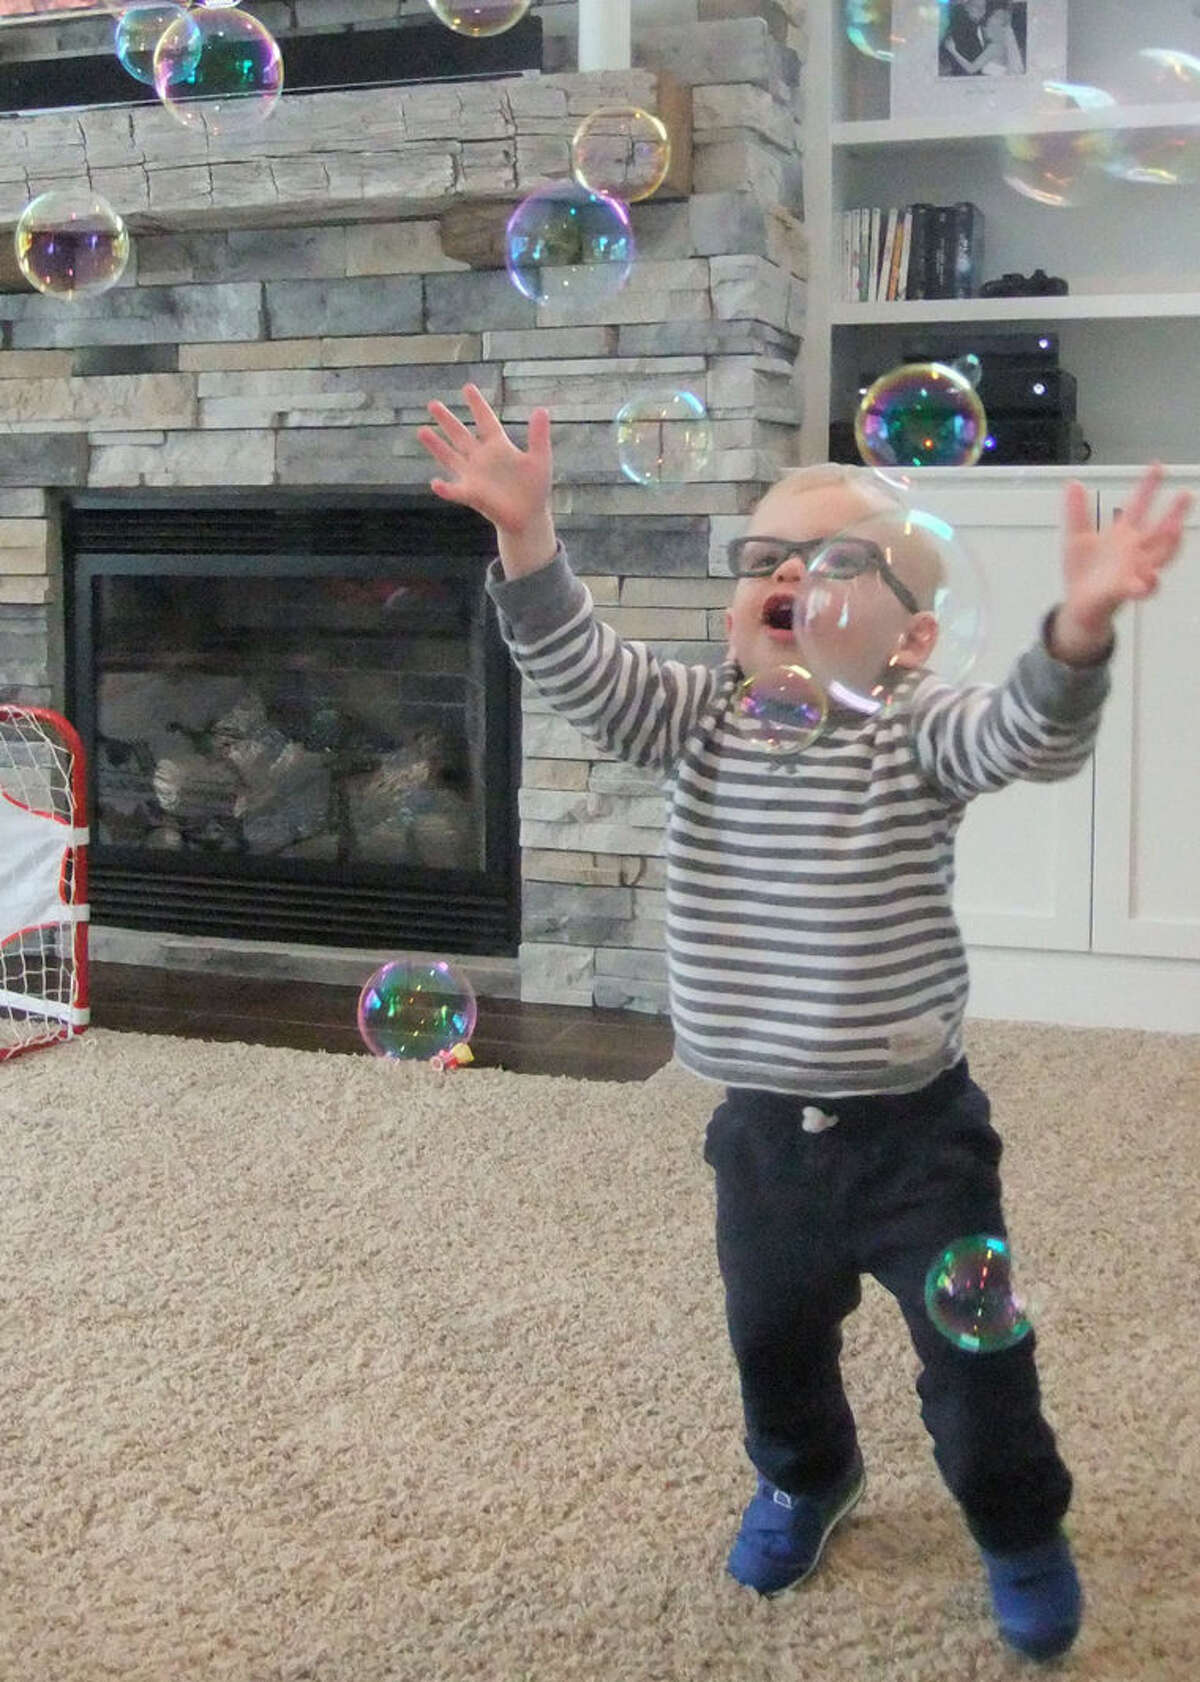 Mikey Wood, 19 months, was found to have an astigmatism after a Lions Club vision test.